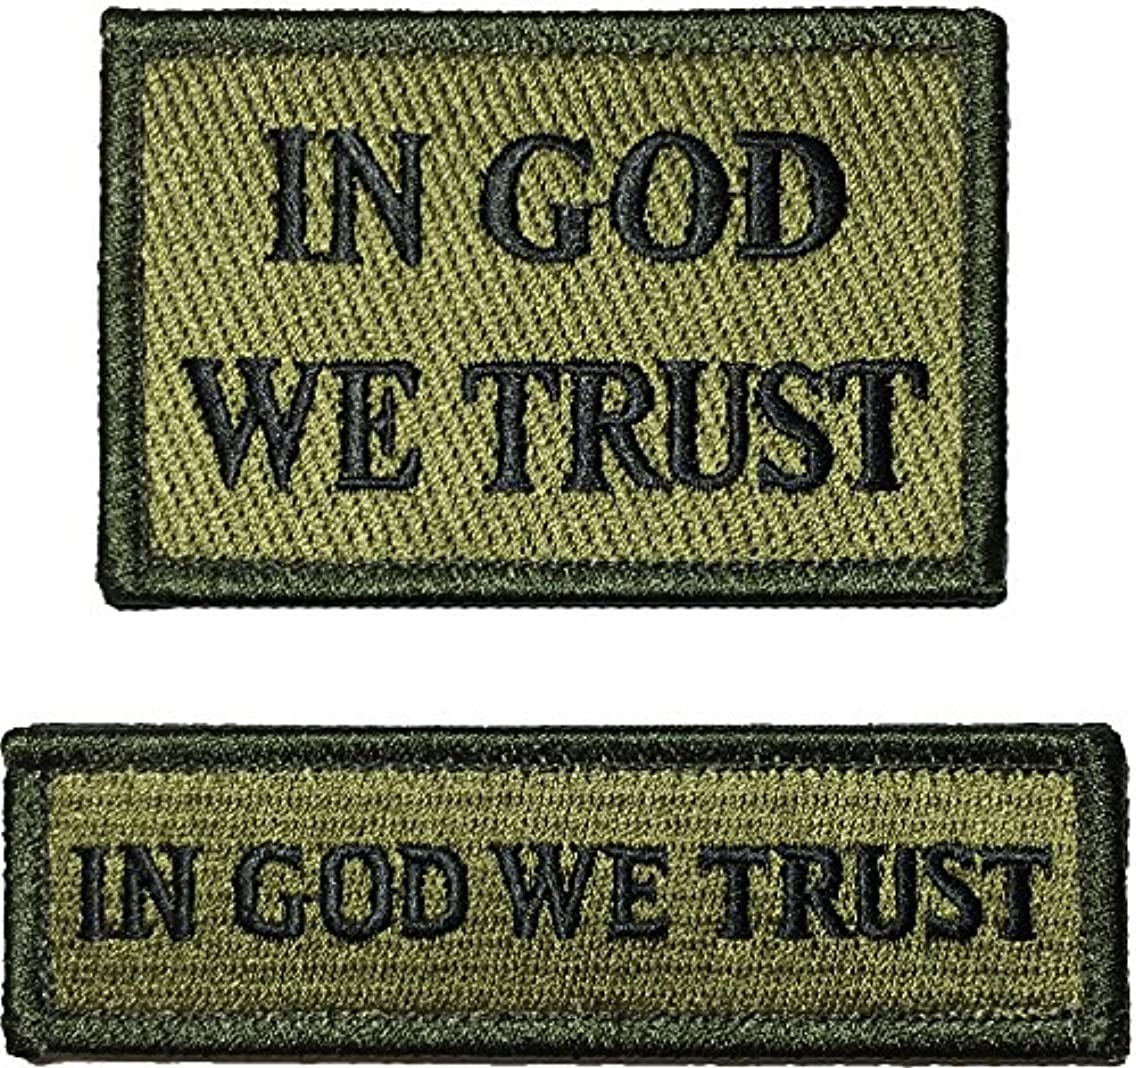 In God We Trust Morale Tactical and Tab Patch Hook and Loop Fasteners Backing - Od (Olive Drab) - By Ranger Return